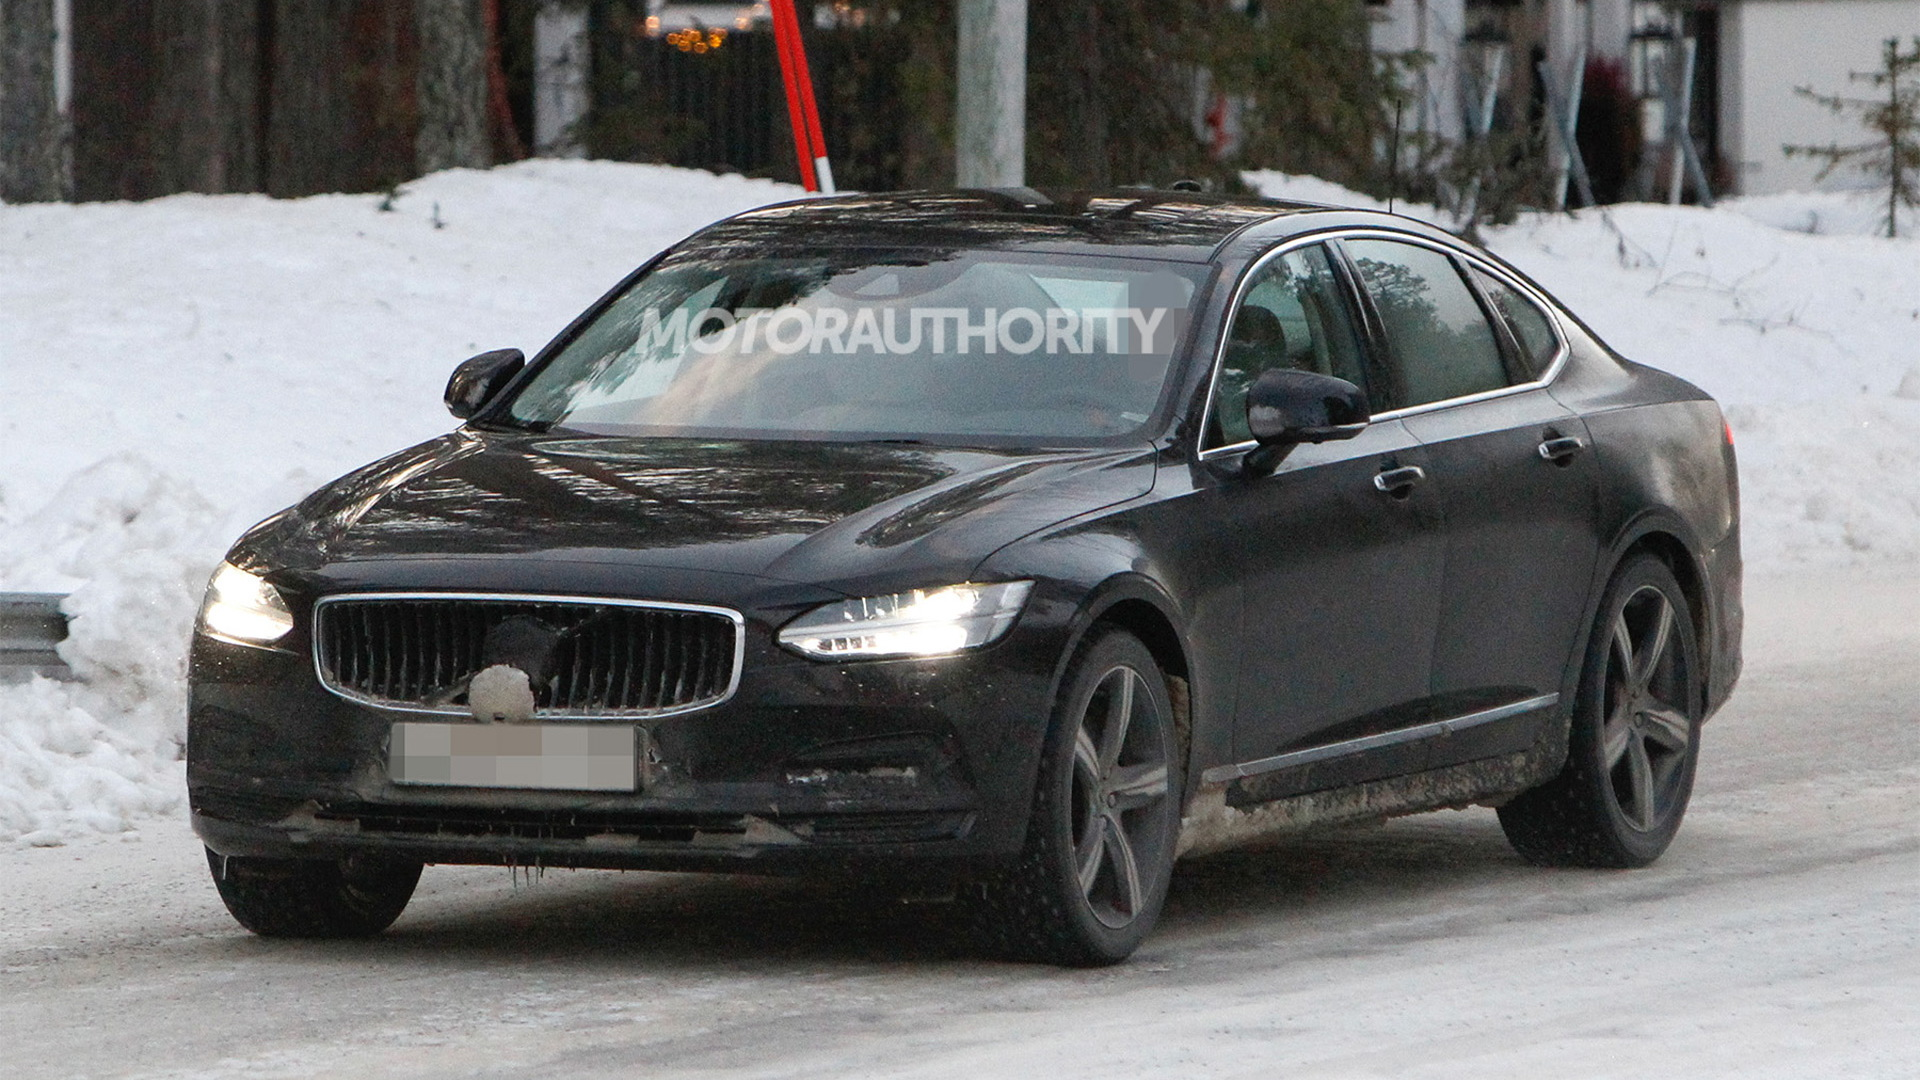 2021 Volvo S90 facelift spy shots - Photo credit: S. Baldauf/SB-Medien